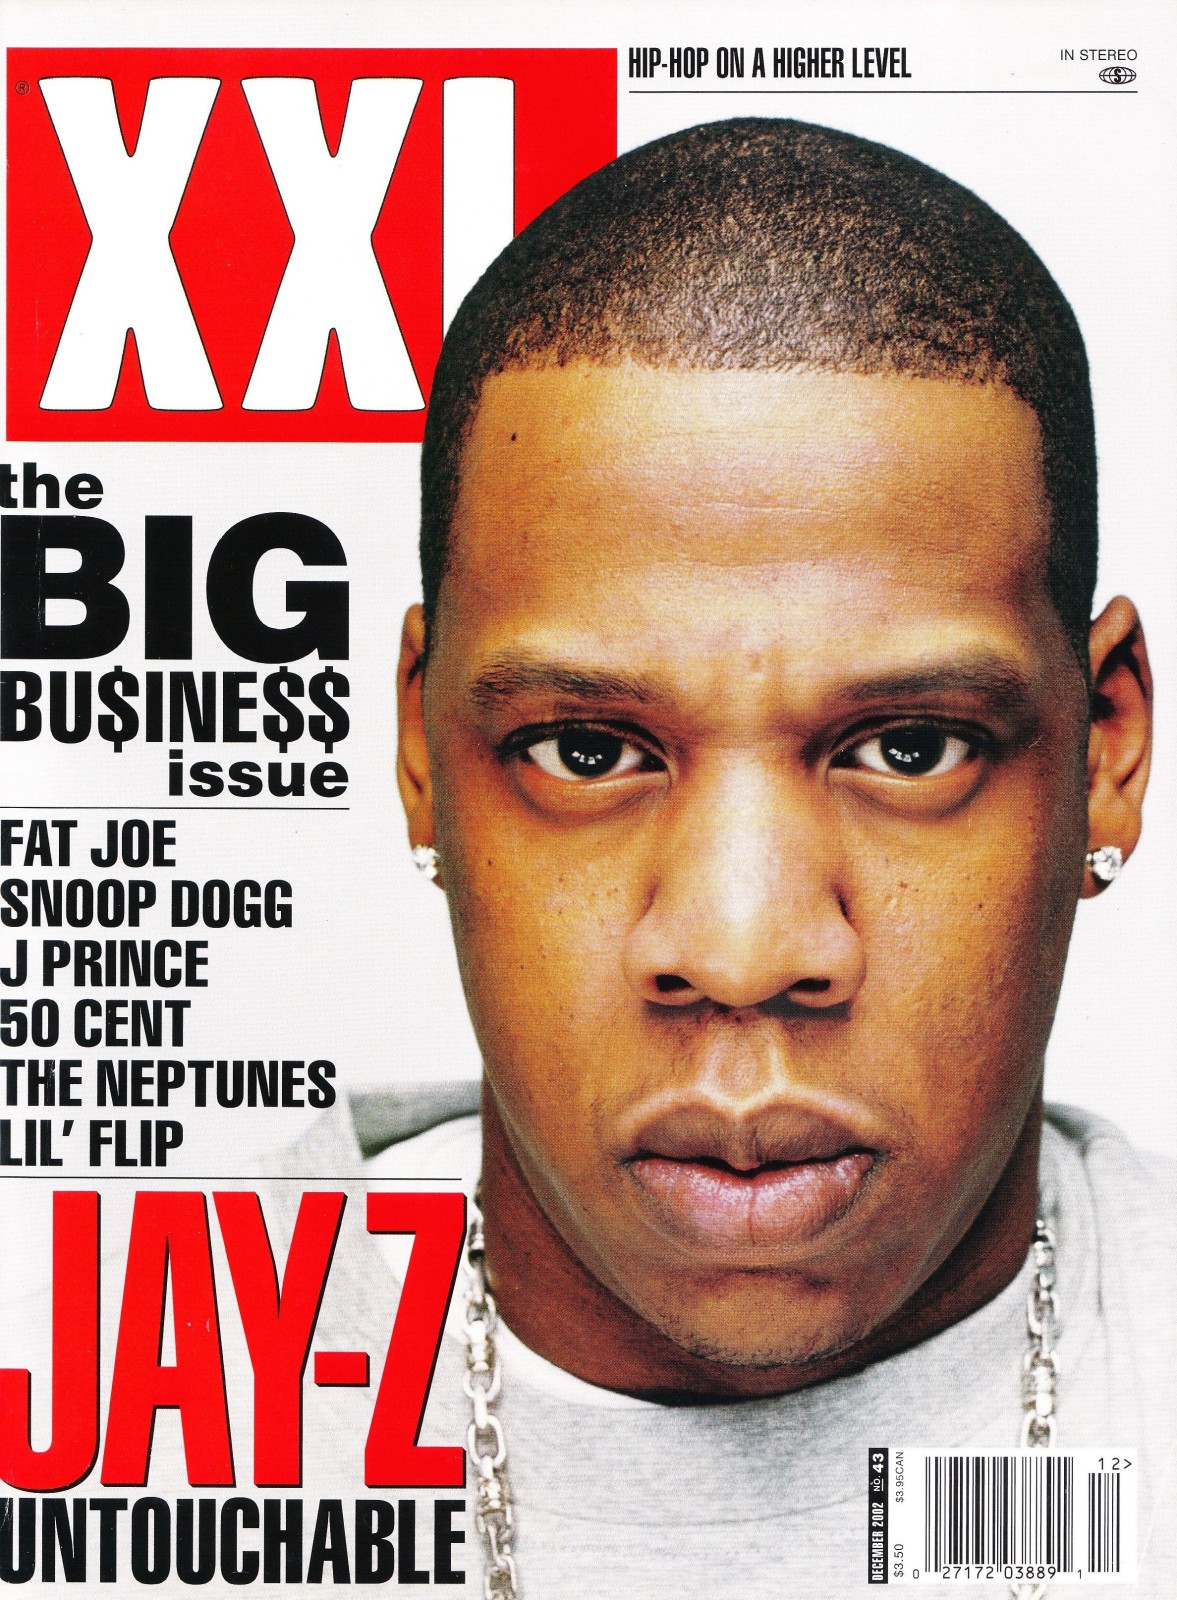 Blueprint 2 download jay z panicconsumer blueprint 2 download jay z malvernweather Images